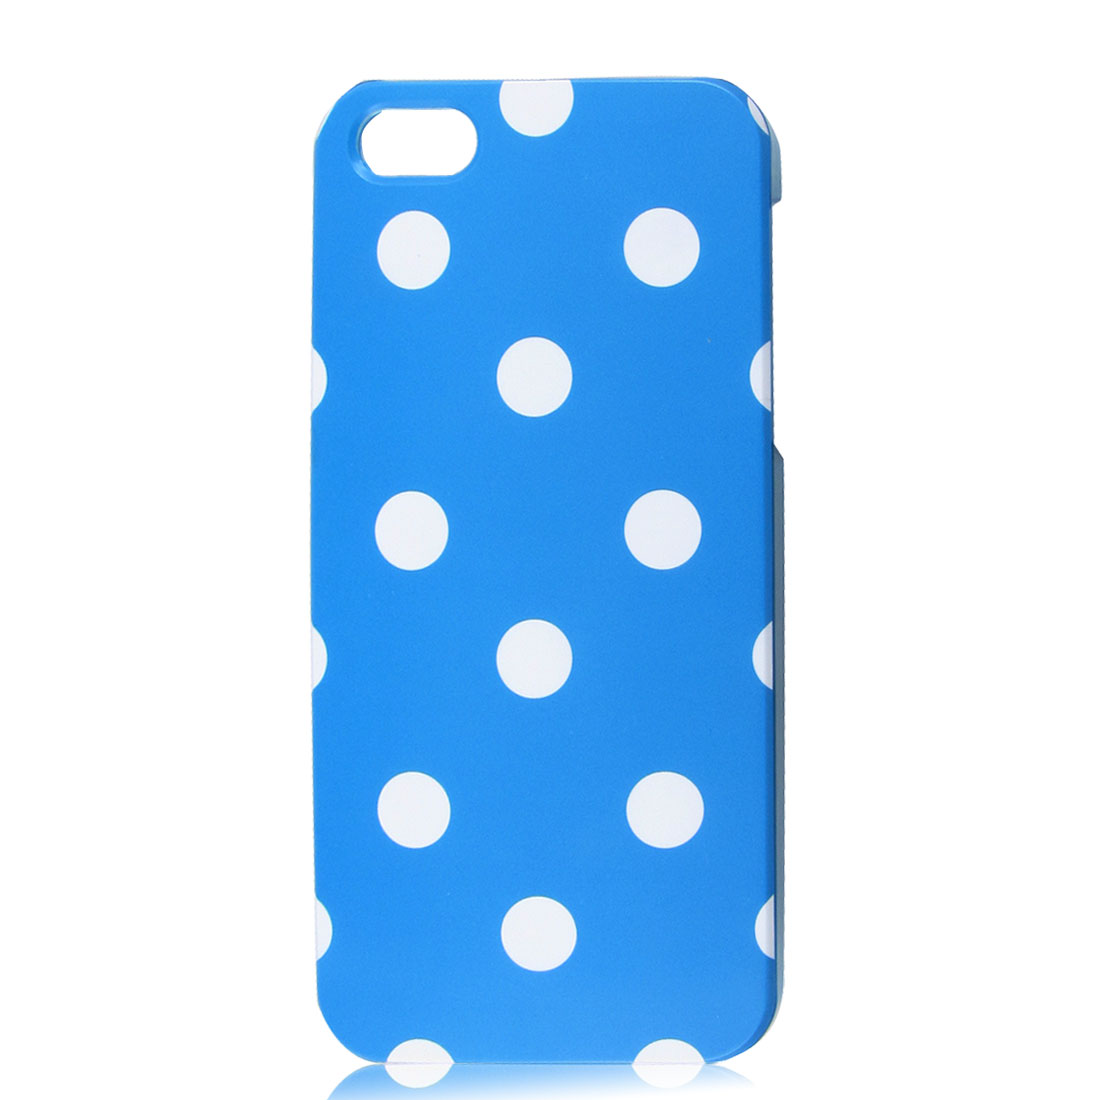 White Polka Dots Sky Blue Phone Hard Back Case Cover for Apple iPhone 5 5G